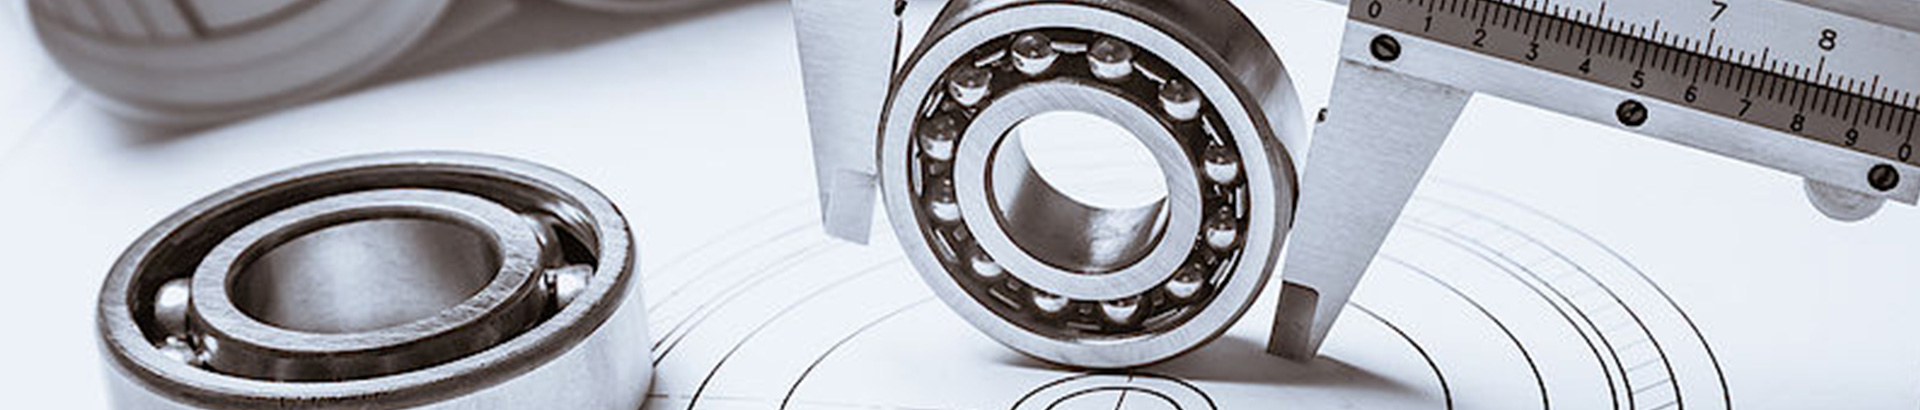 Ultra-Precision Machining System Technology, Cross-Domain Integration Added Value